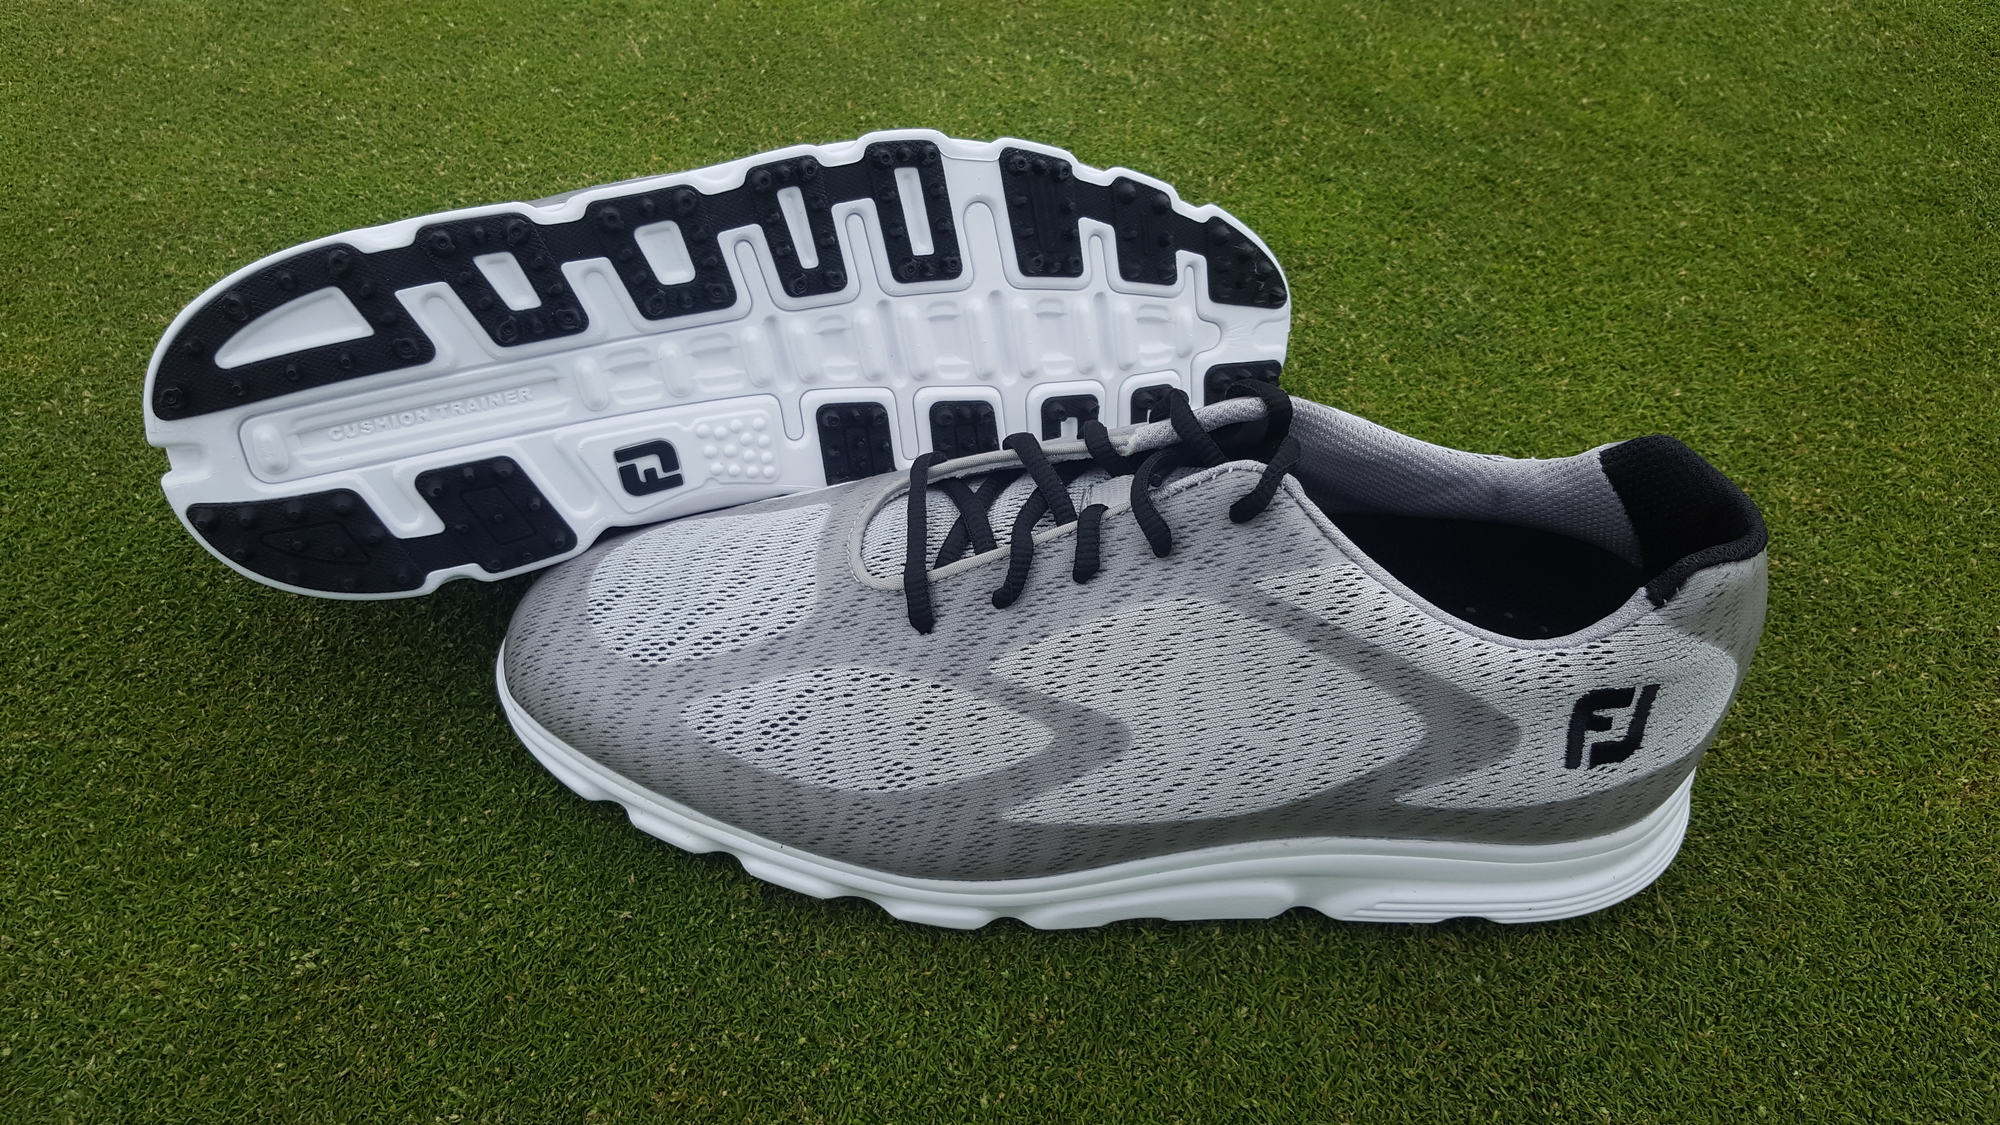 250b67949a4ba 10 Best Spikeless Golf Shoes Reviewed in 2019 | Hombre Golf Club